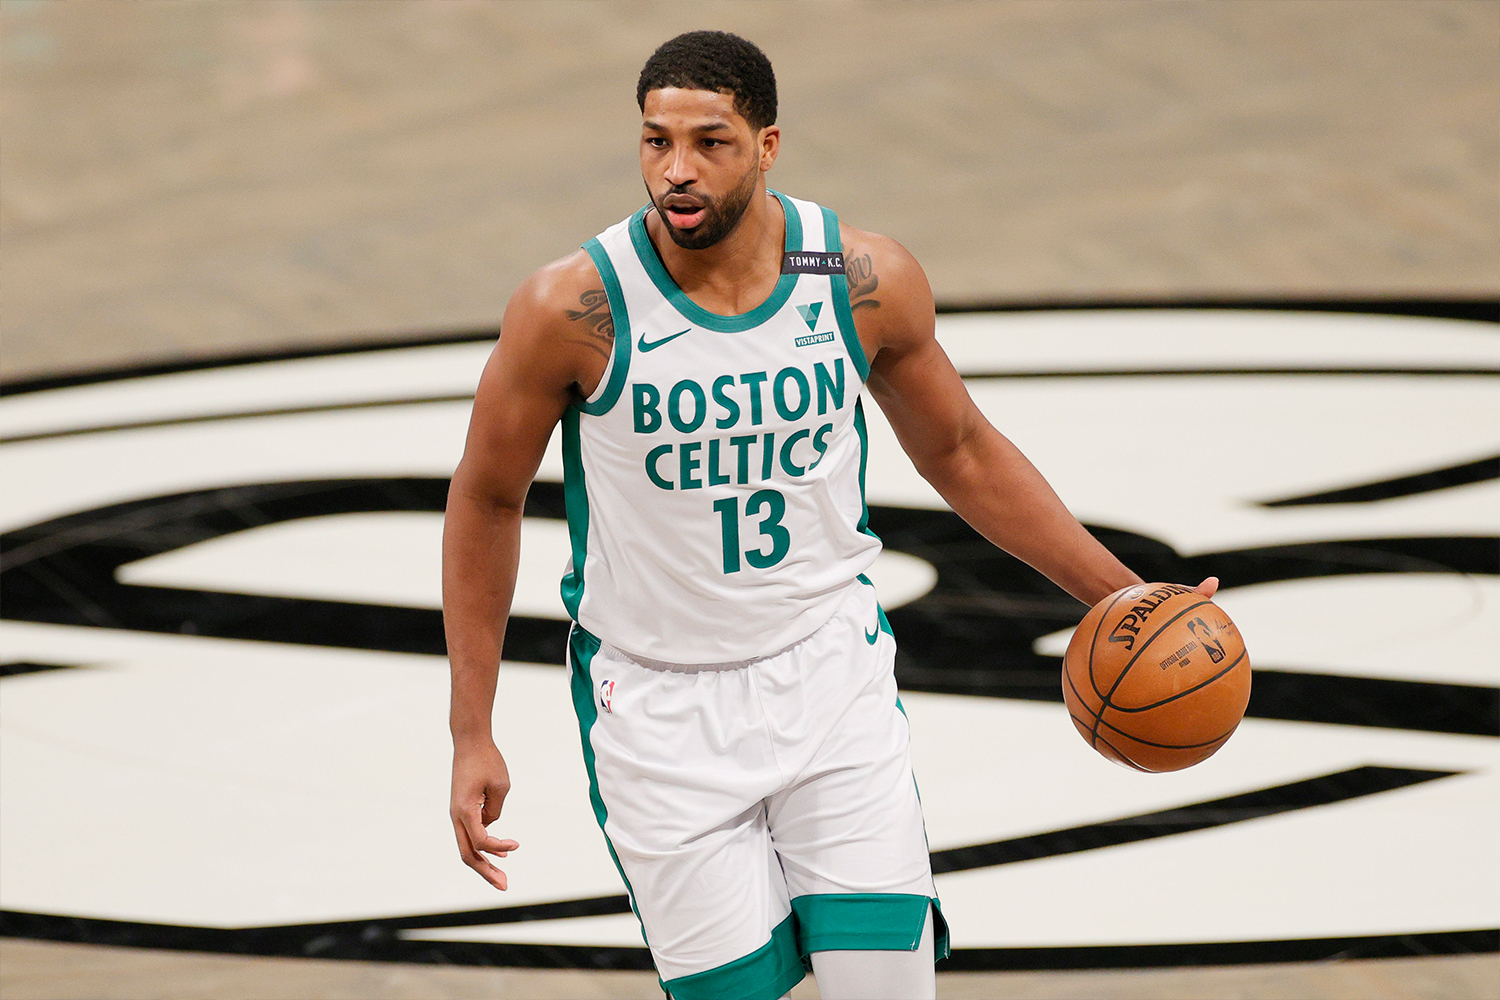 Tristan Thompson #13 of the Boston Celtics dribbles during the first half against the Brooklyn Nets